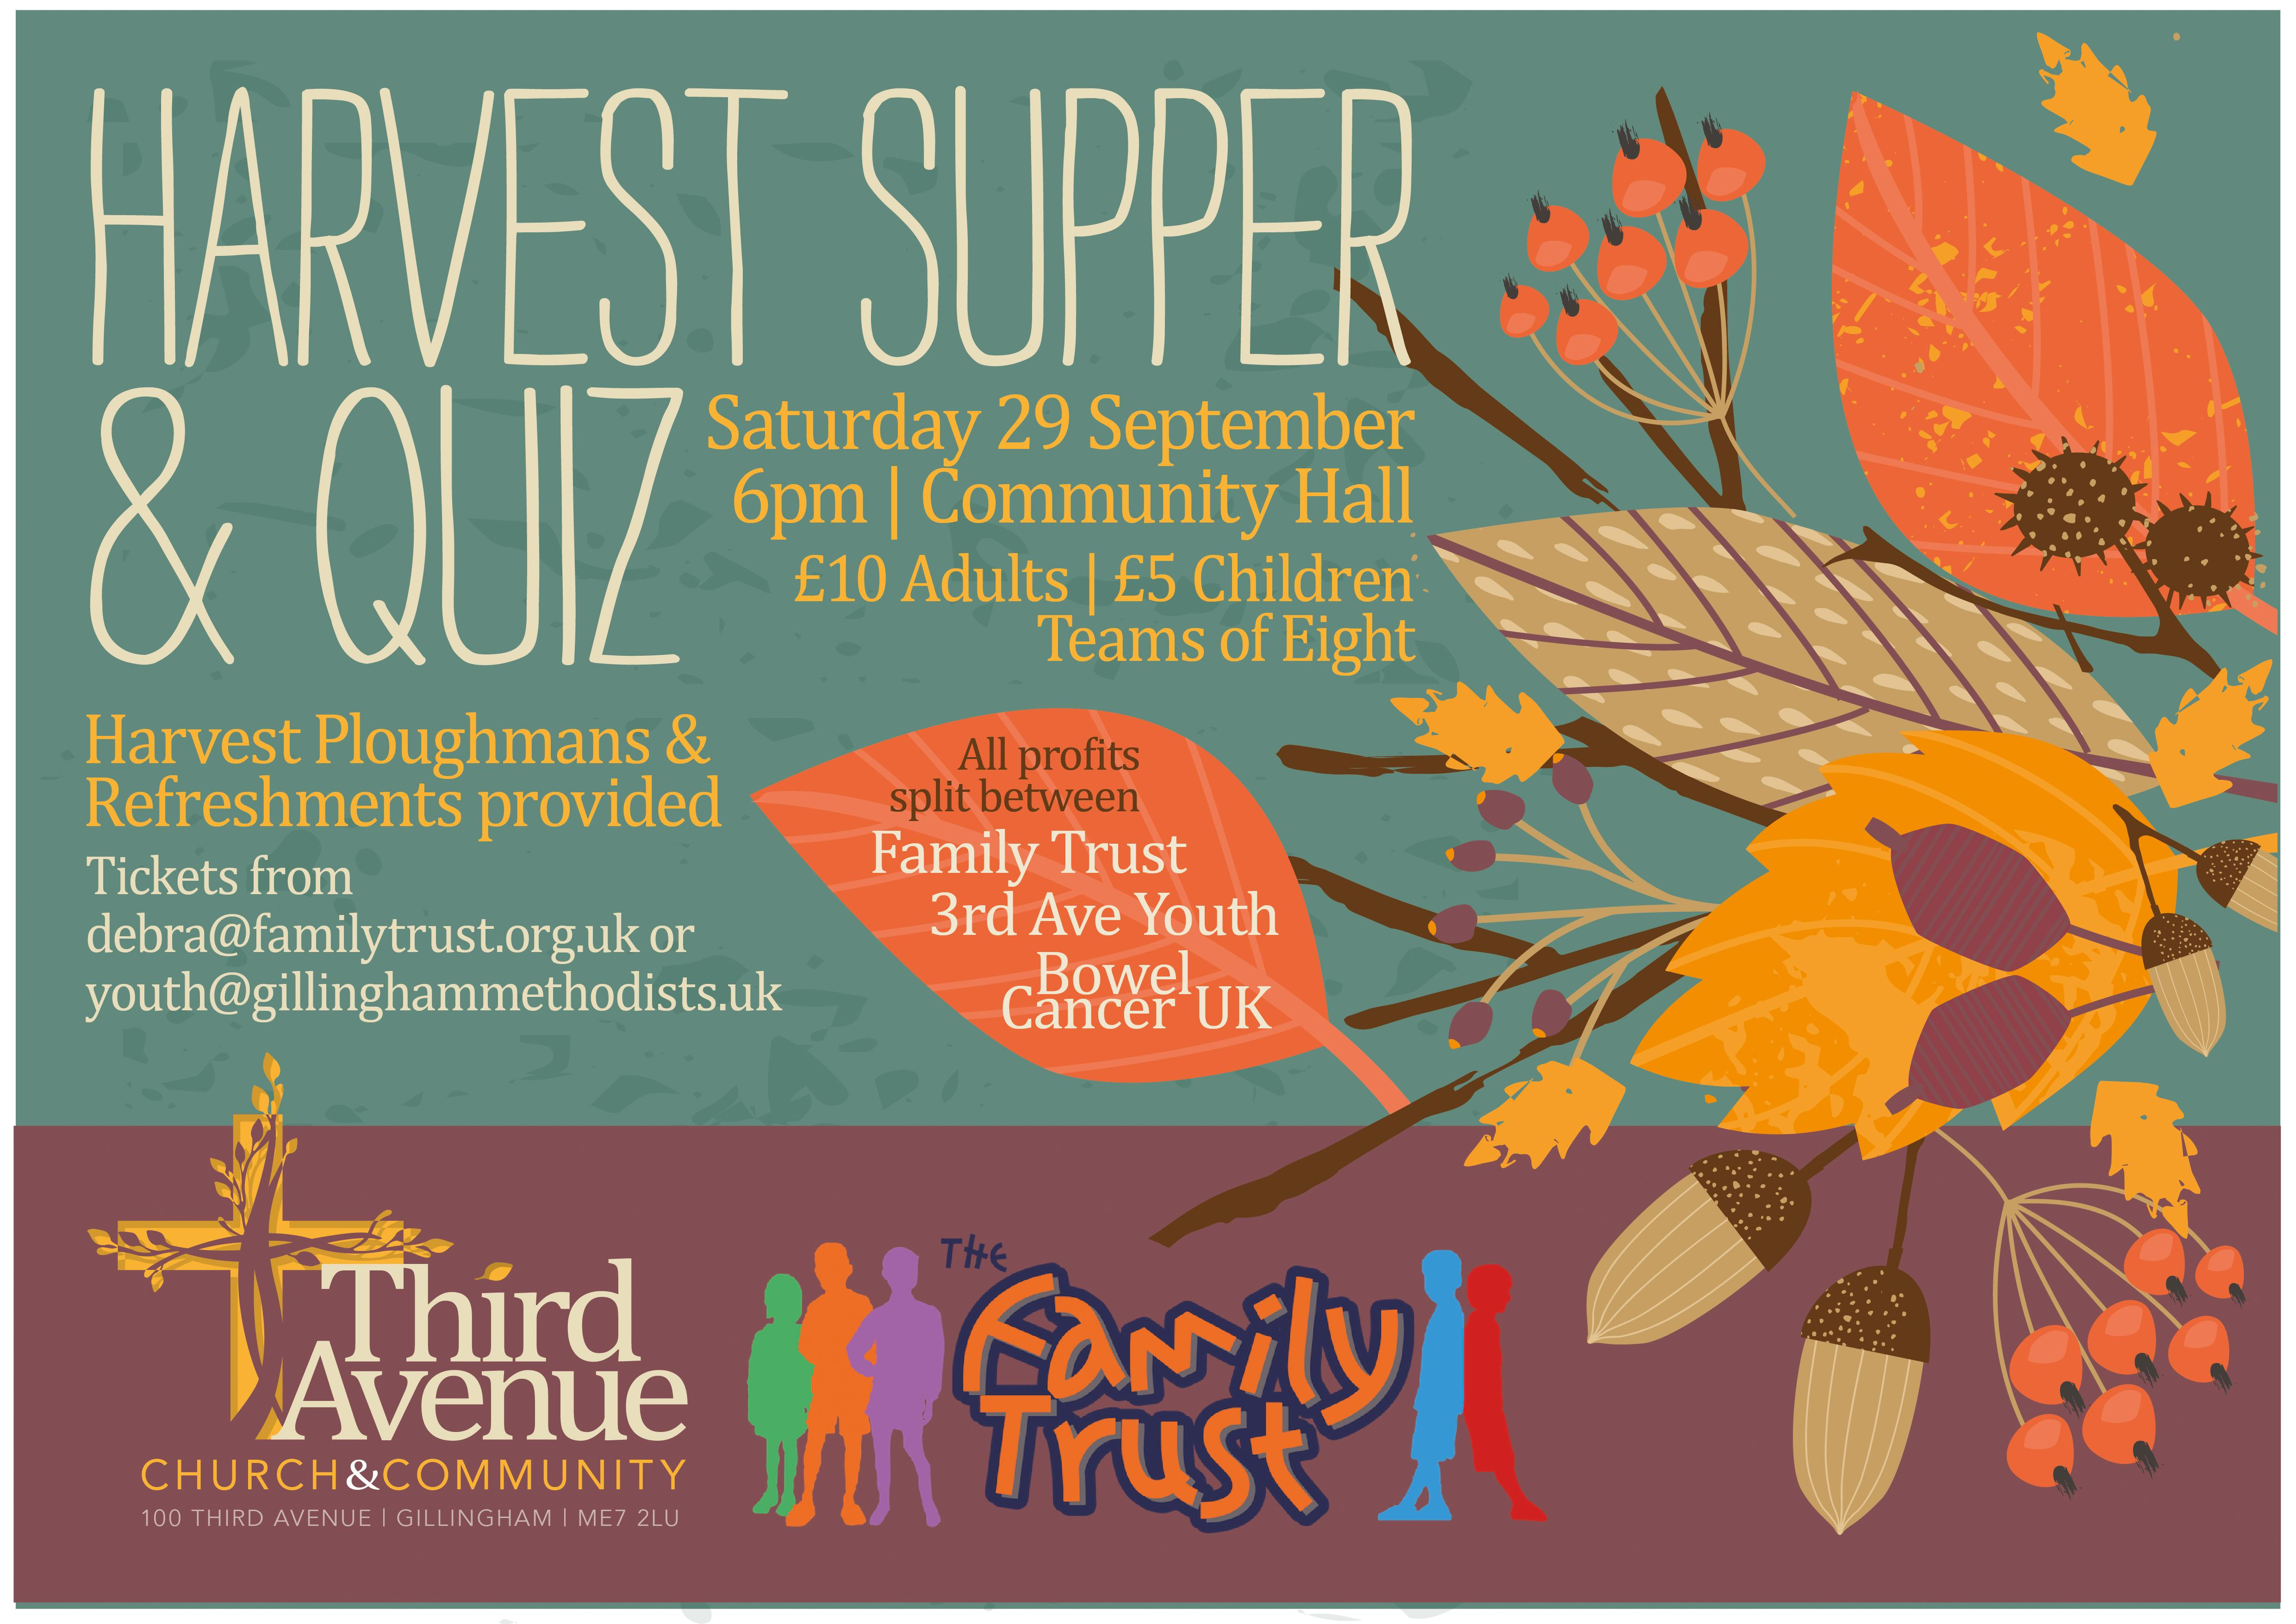 HARVEST SUPPER_18-02